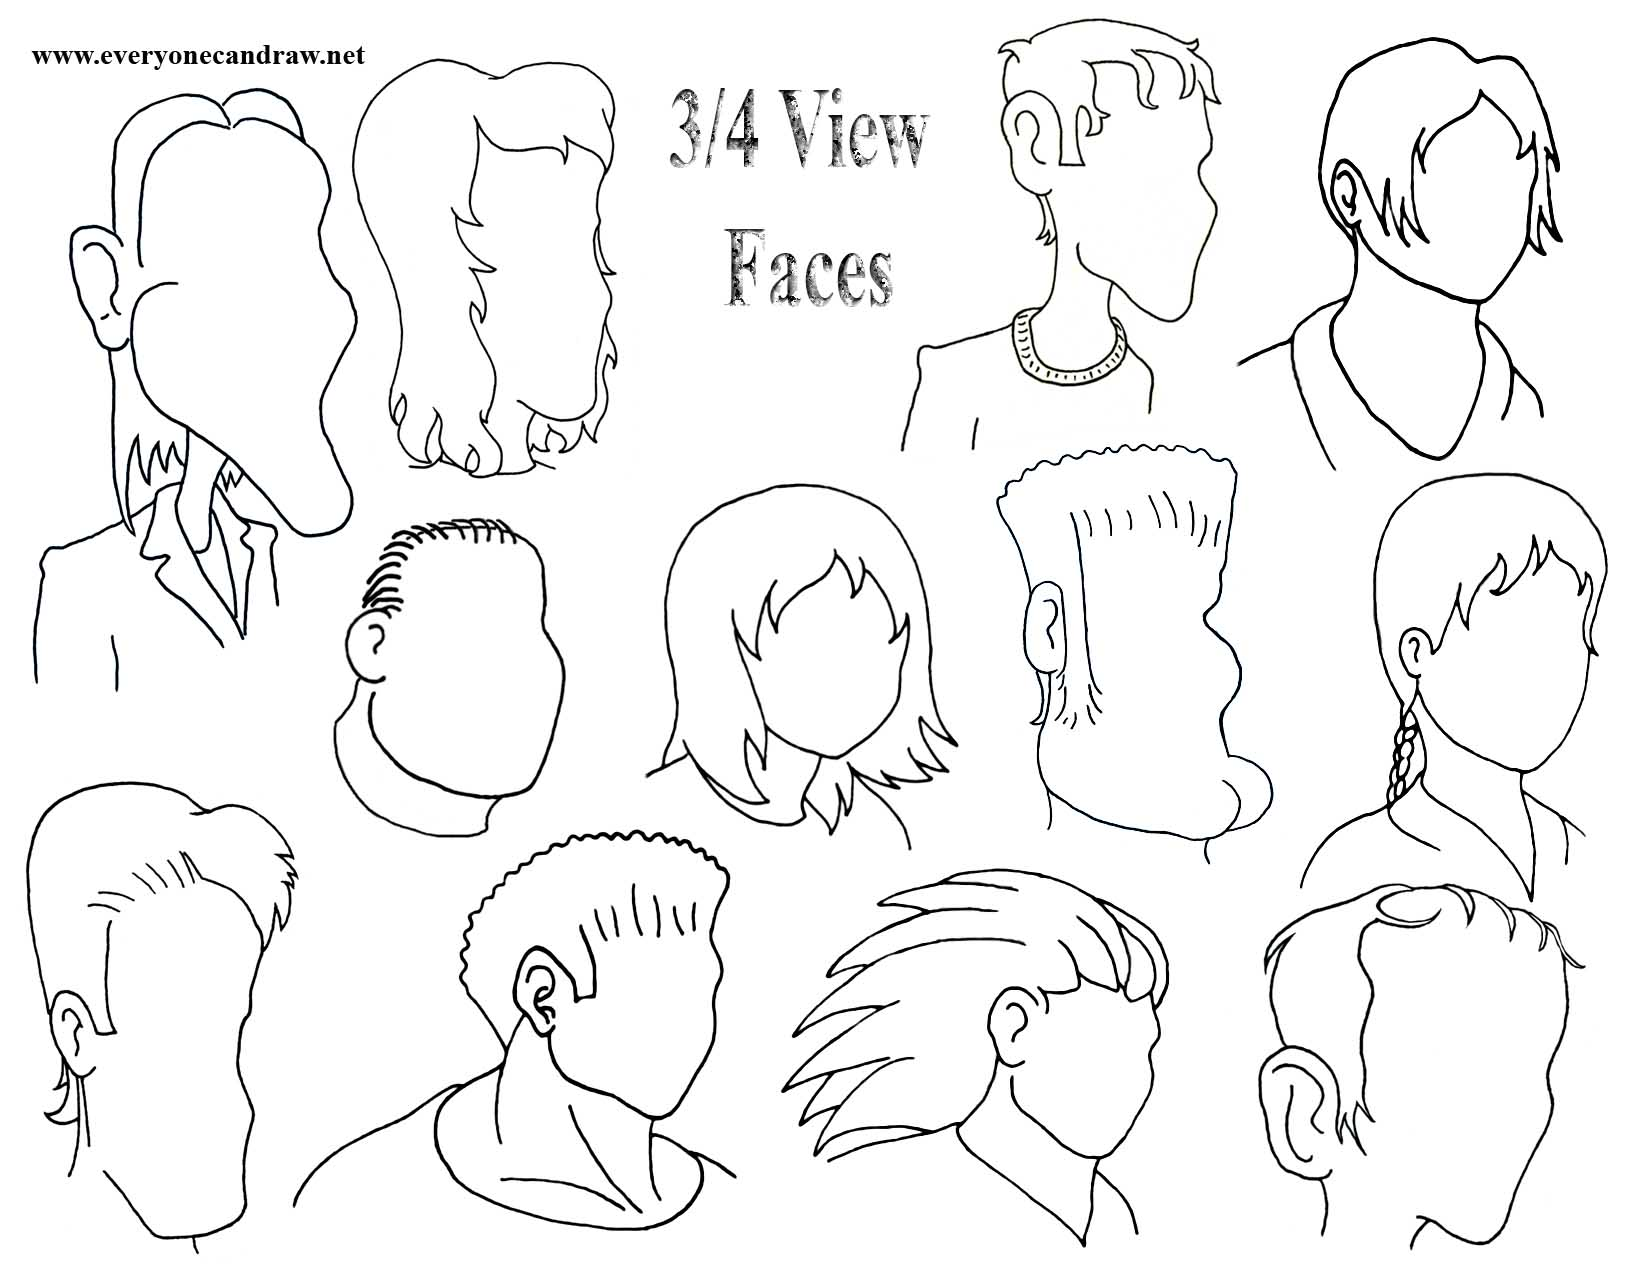 Facing right- 3-4 view faces 4